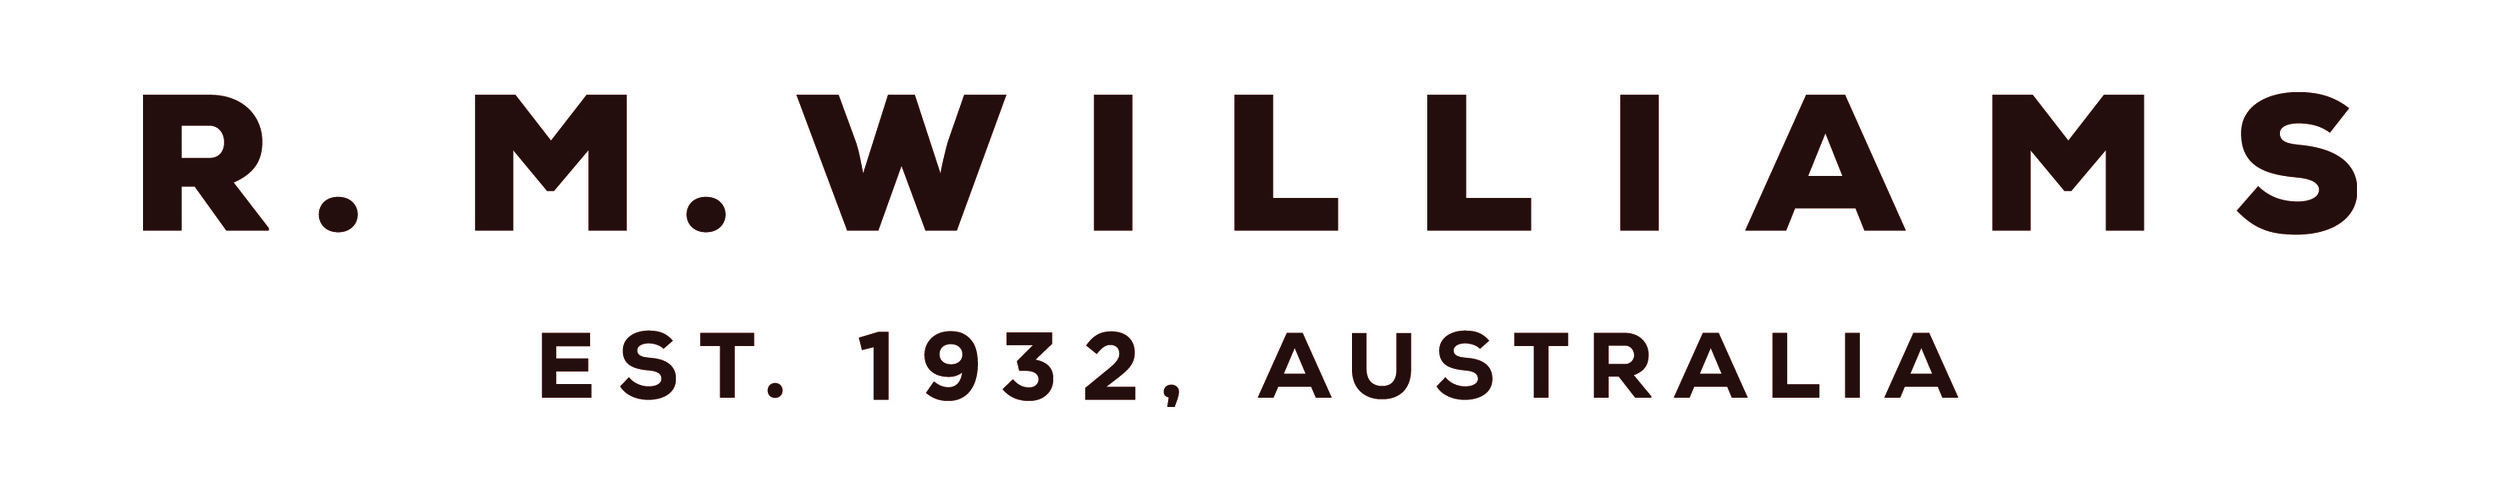 AFI-RMWilliams-logo.jpg